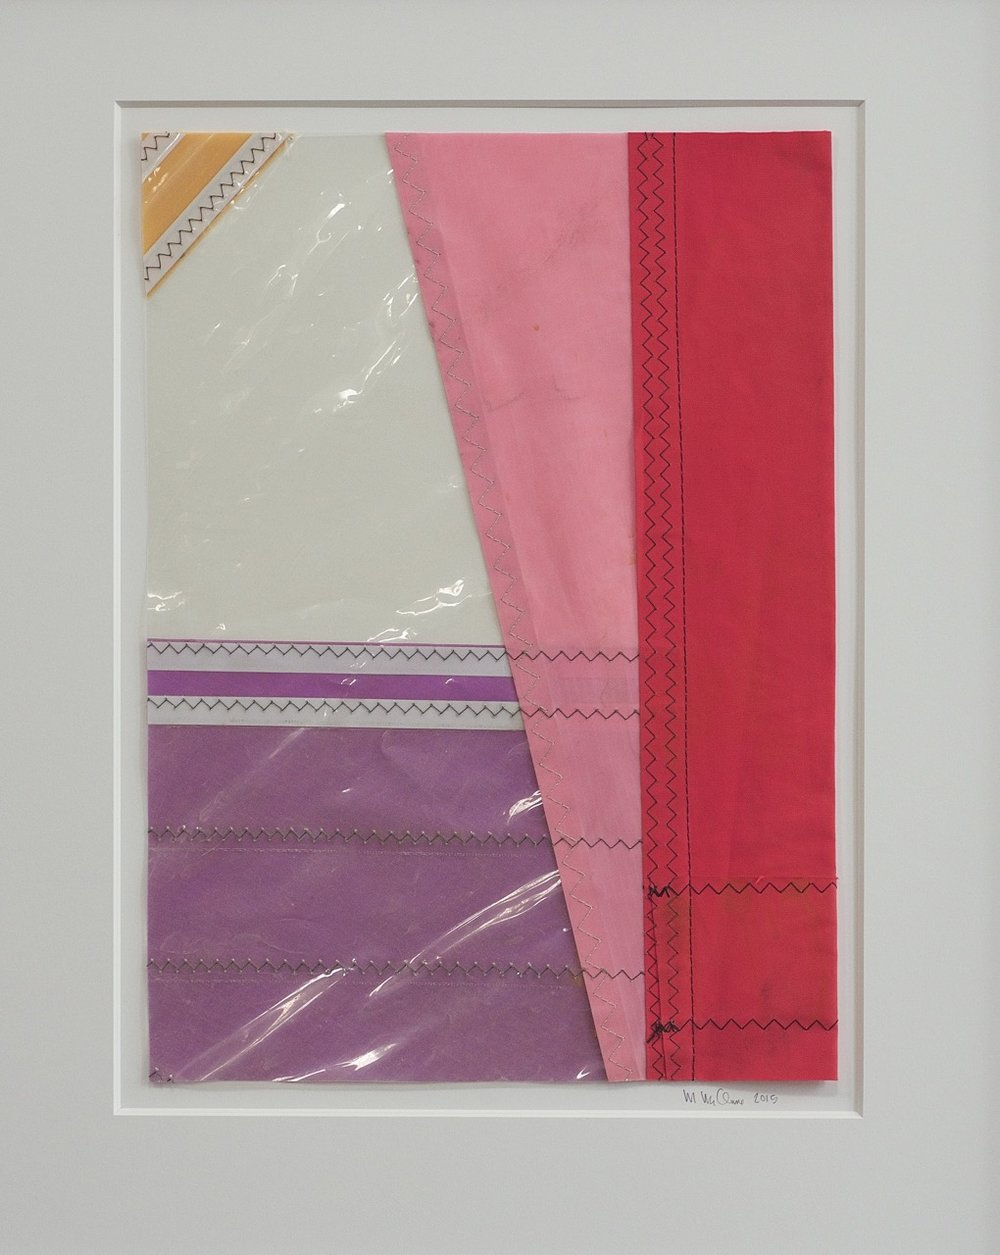 sailcloth composition 2, 2015, 80x60cm.jpg